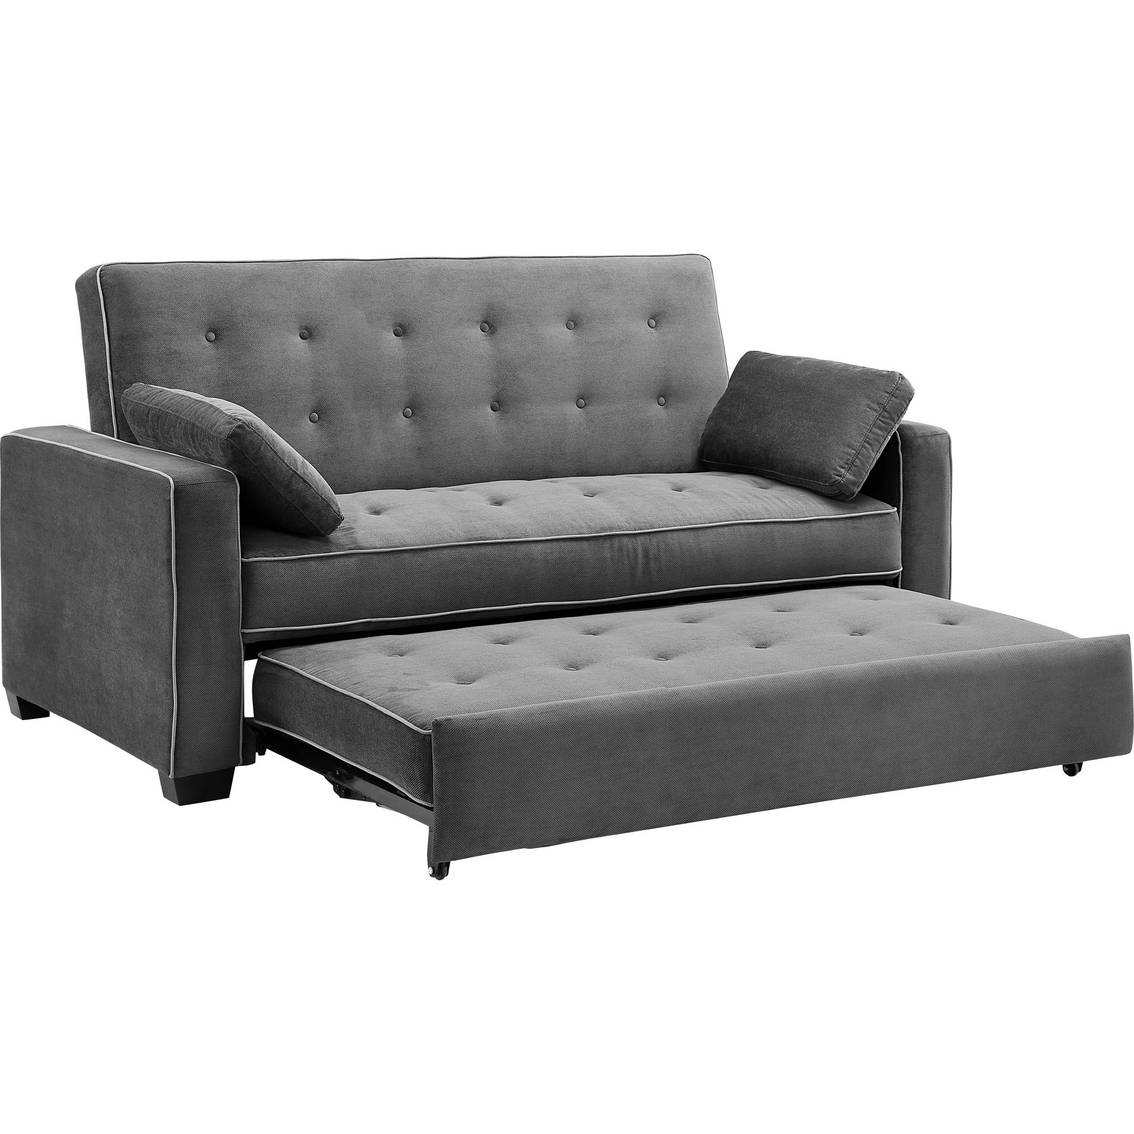 Serta Augustine Convertible Queen-Size Sleeper Sofa | Serta pertaining to Sofa Sleepers Queen Size (Image 14 of 30)